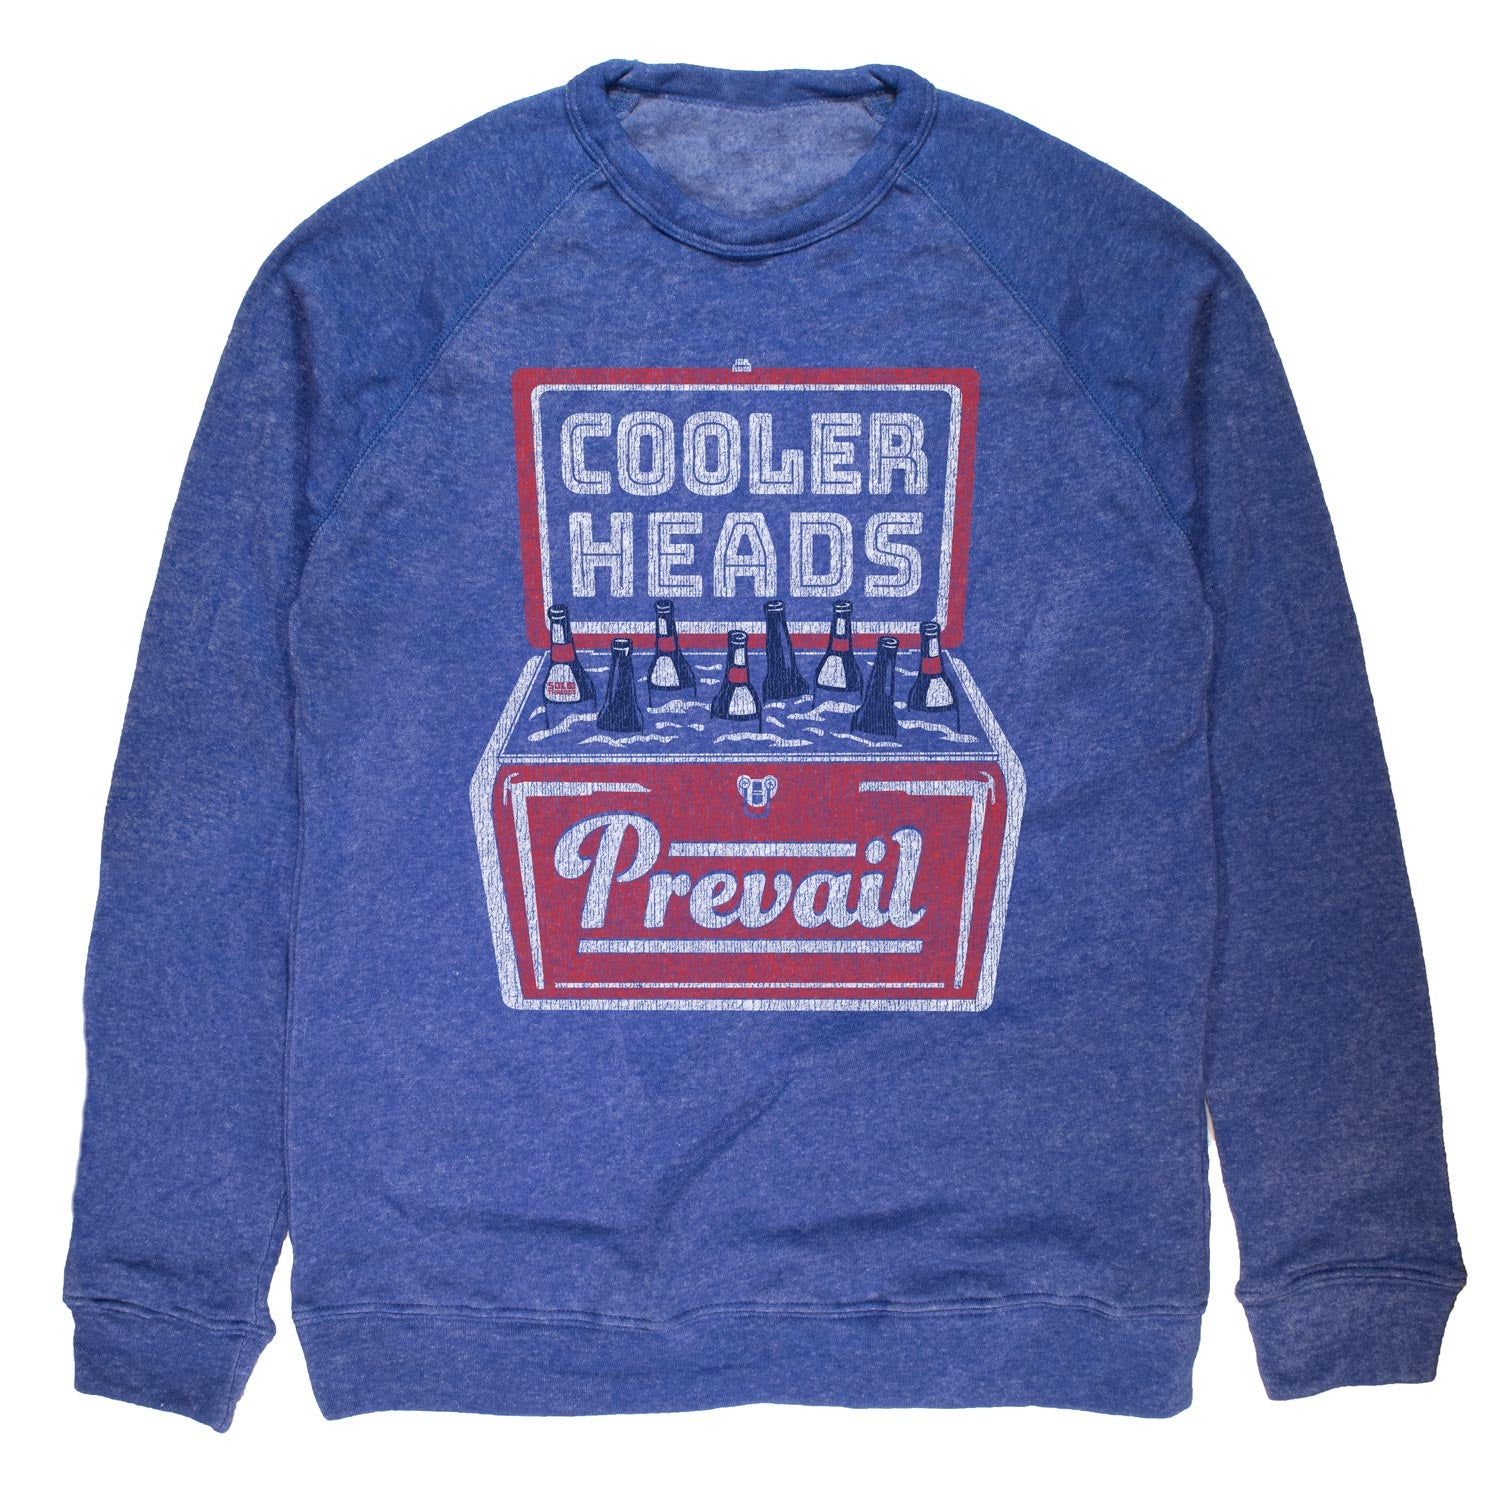 Cooler Heads Prevail Vintage Fleece Crewneck Sweatshirt | Funny Party Graphic | Solid Threads